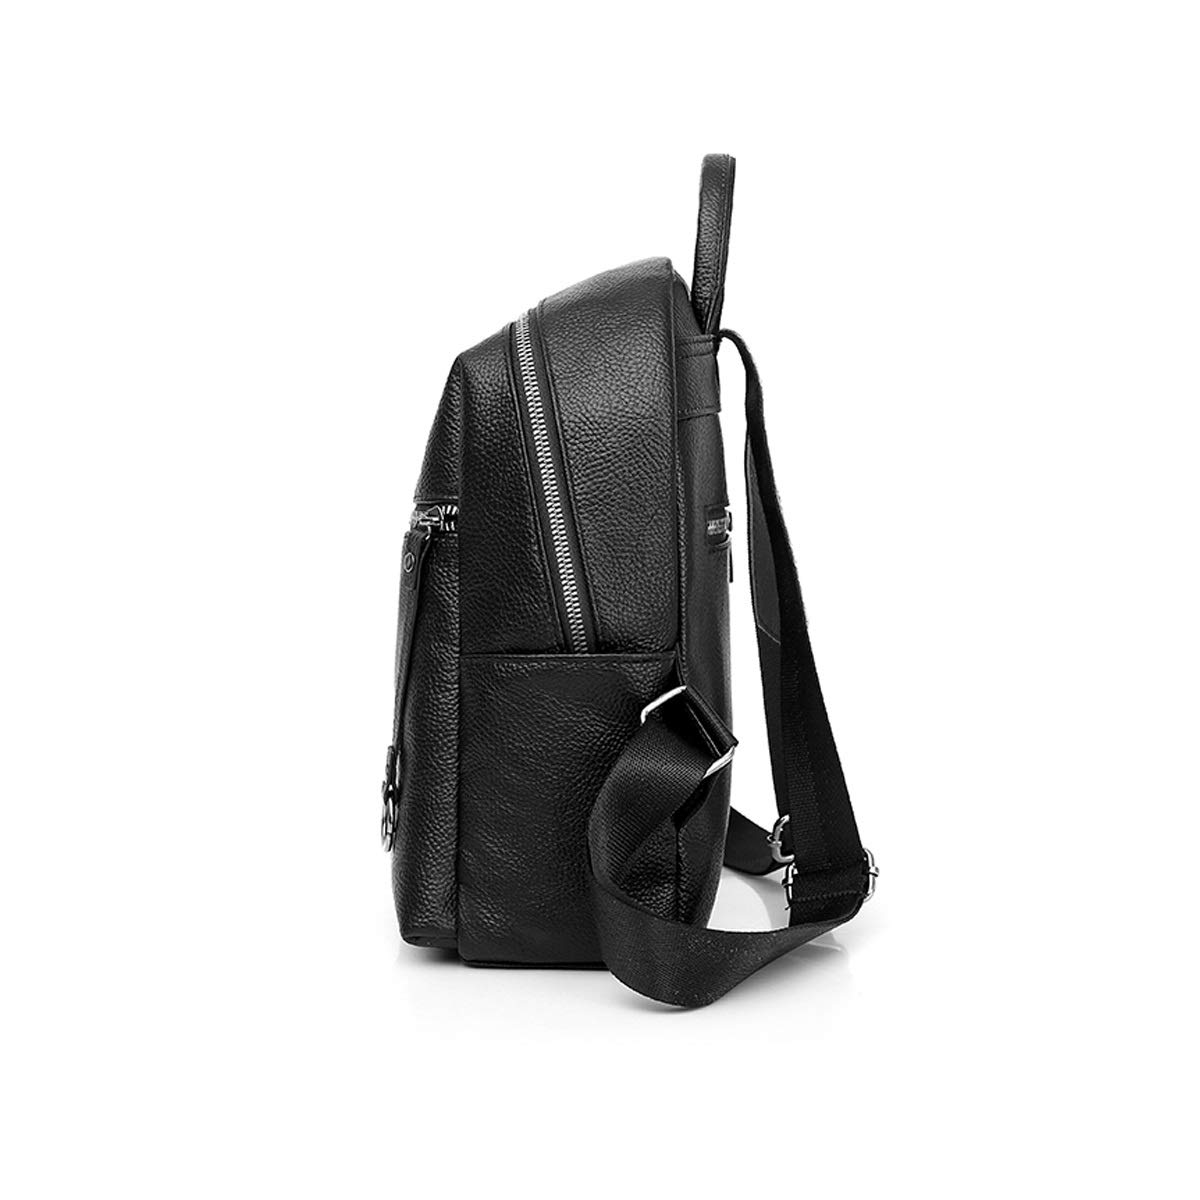 Black//Brown School Travel Outdoor Fashion and Leisure Haoyushangmao The Girls Versatile Backpack is Perfect for Everyday Travel Color : Brown, Size : 27cm32cm12cm Simple and Practical. Work